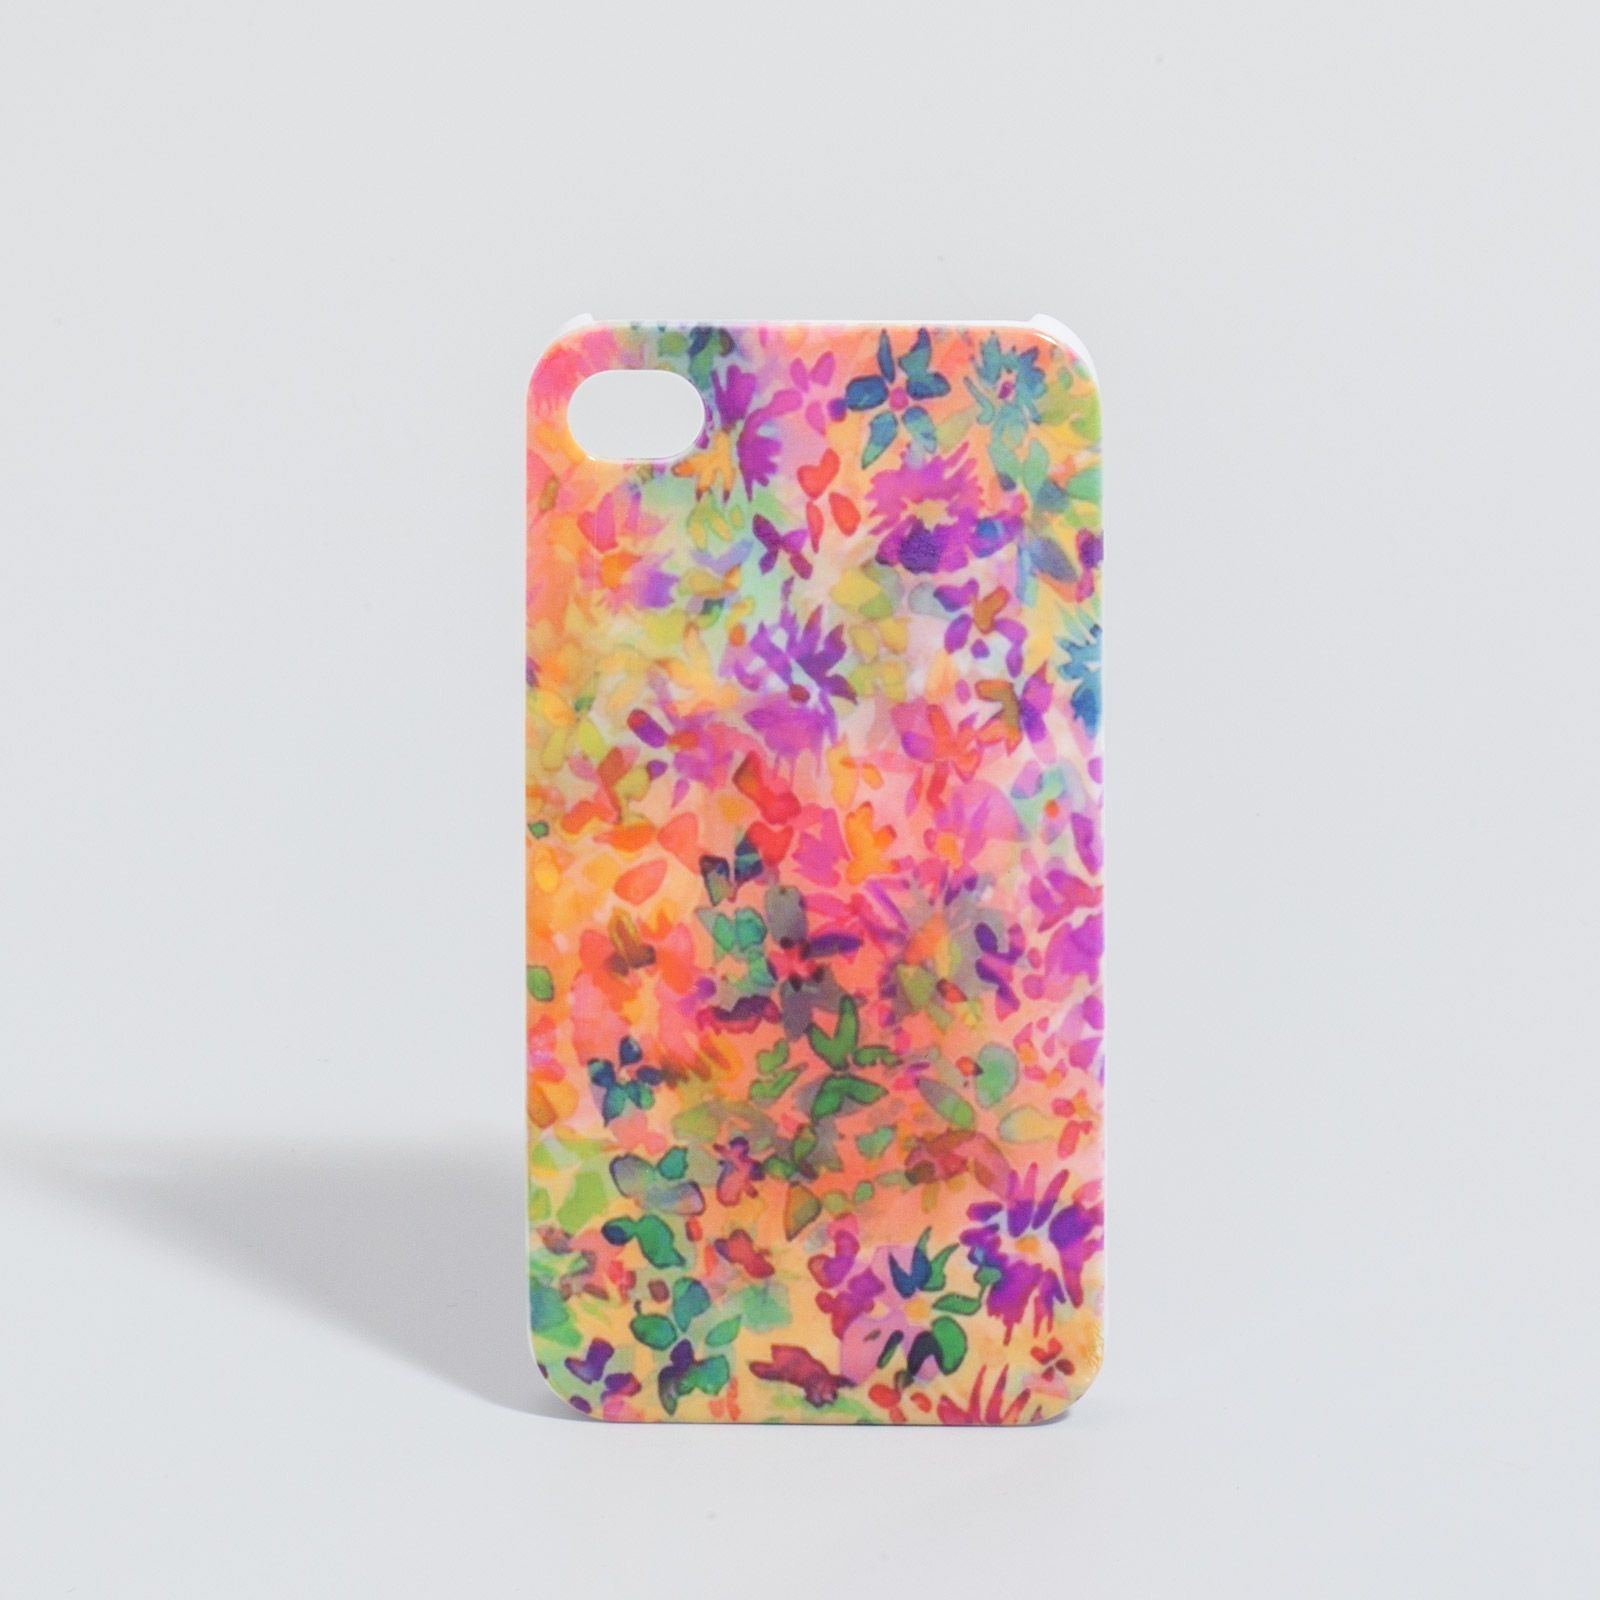 online retailer 5716f 6d58a Flower Paint Phone Cover from Dotti (AUD $2.95). | iPhone Bliiing ...